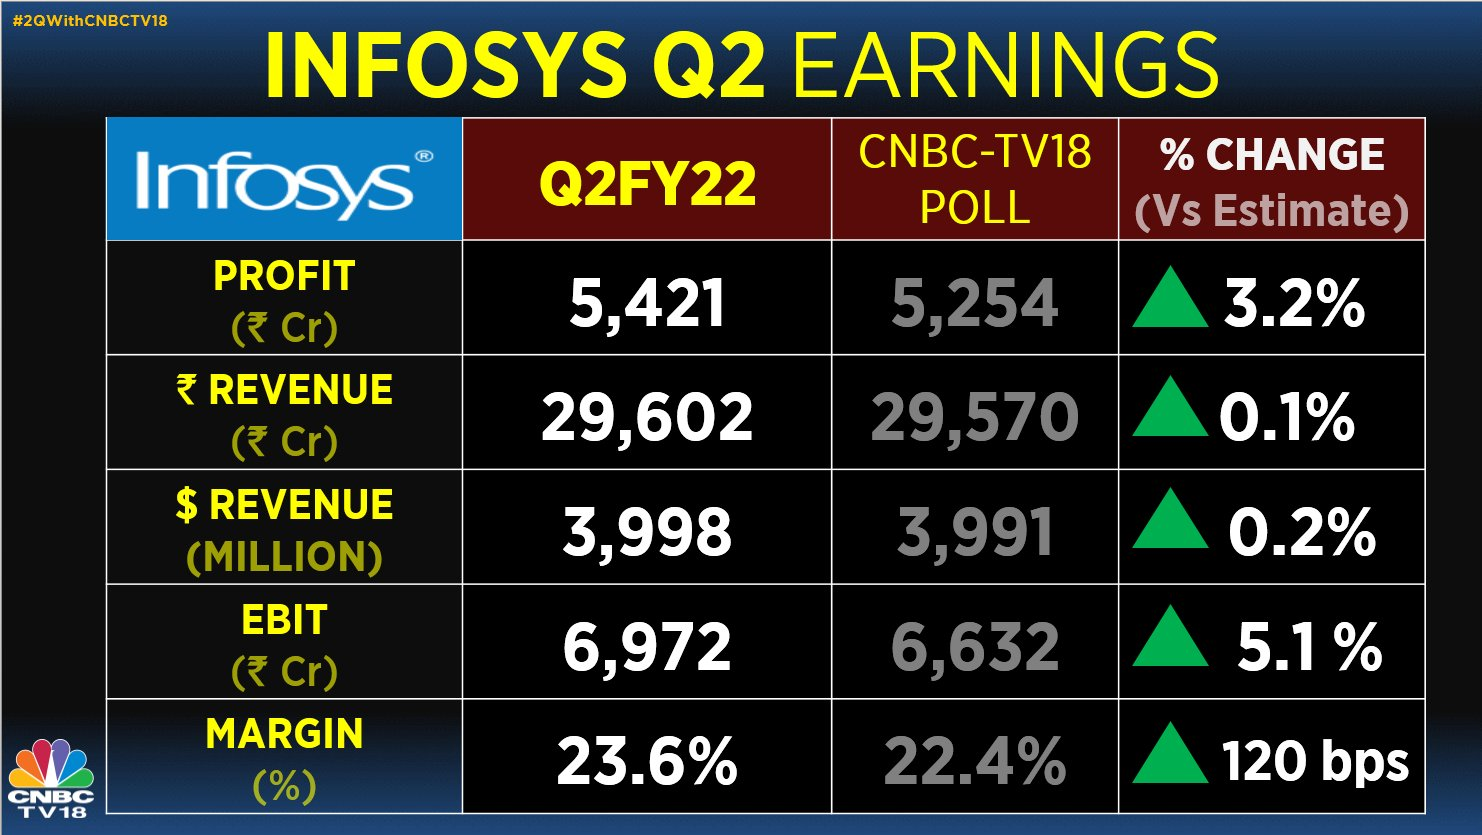 India Inc Earnings Highlights: Infosys beats Street estimate with net profit of Rs 5,421 crore, ups revenue guidance